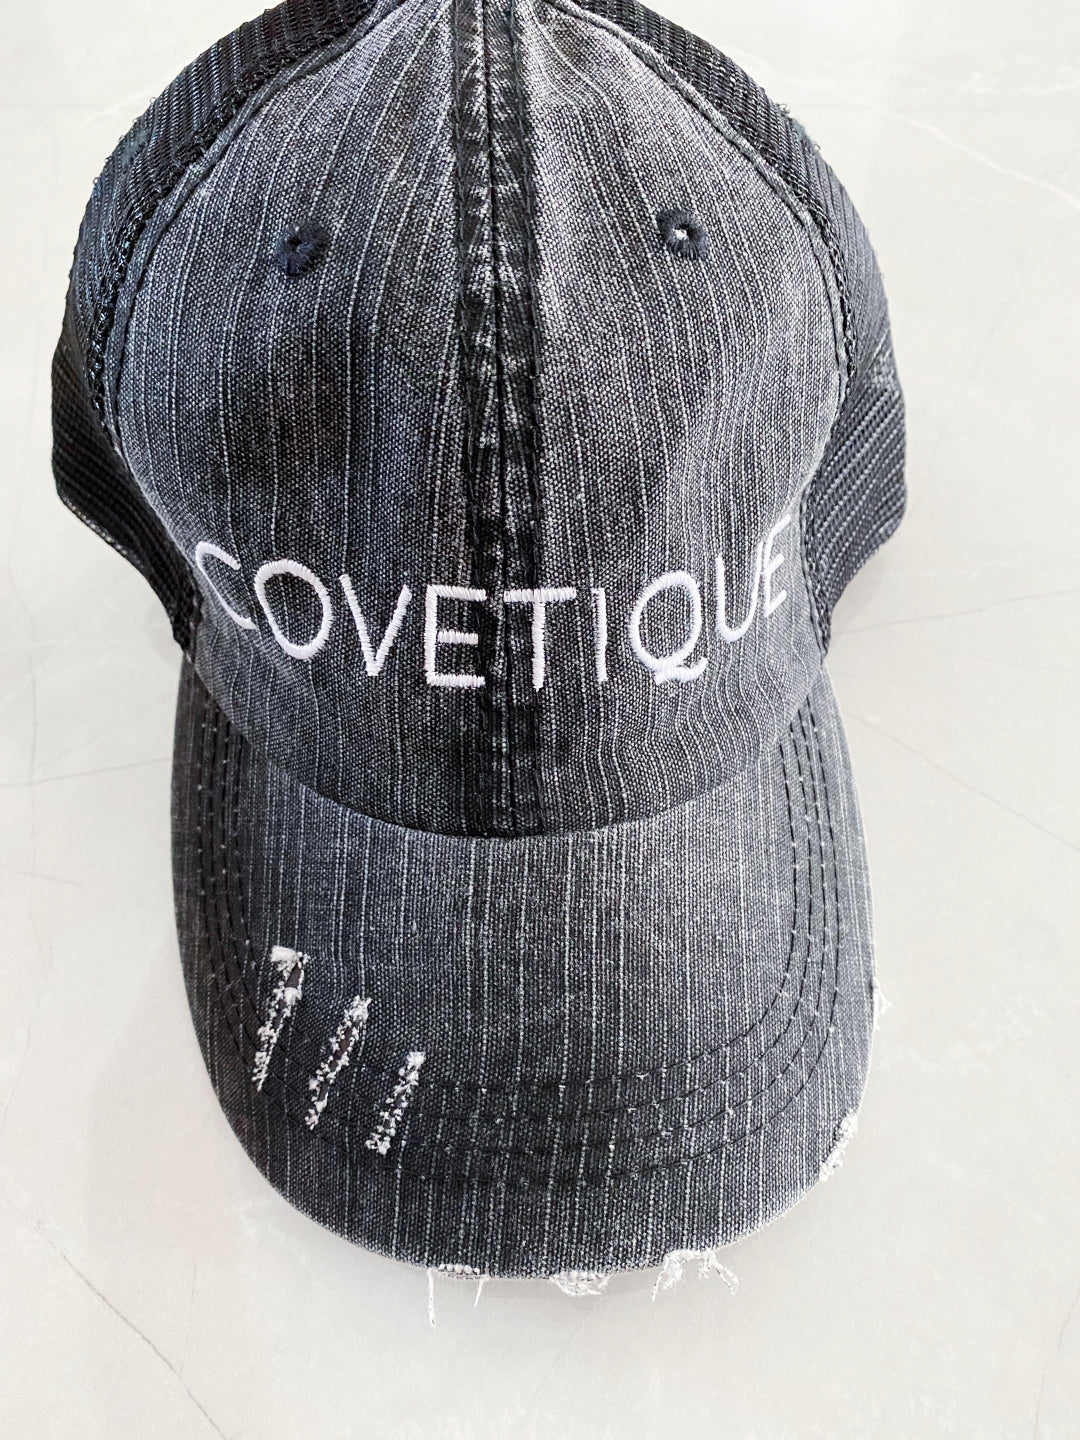 COVETIQUE DENIM CAP